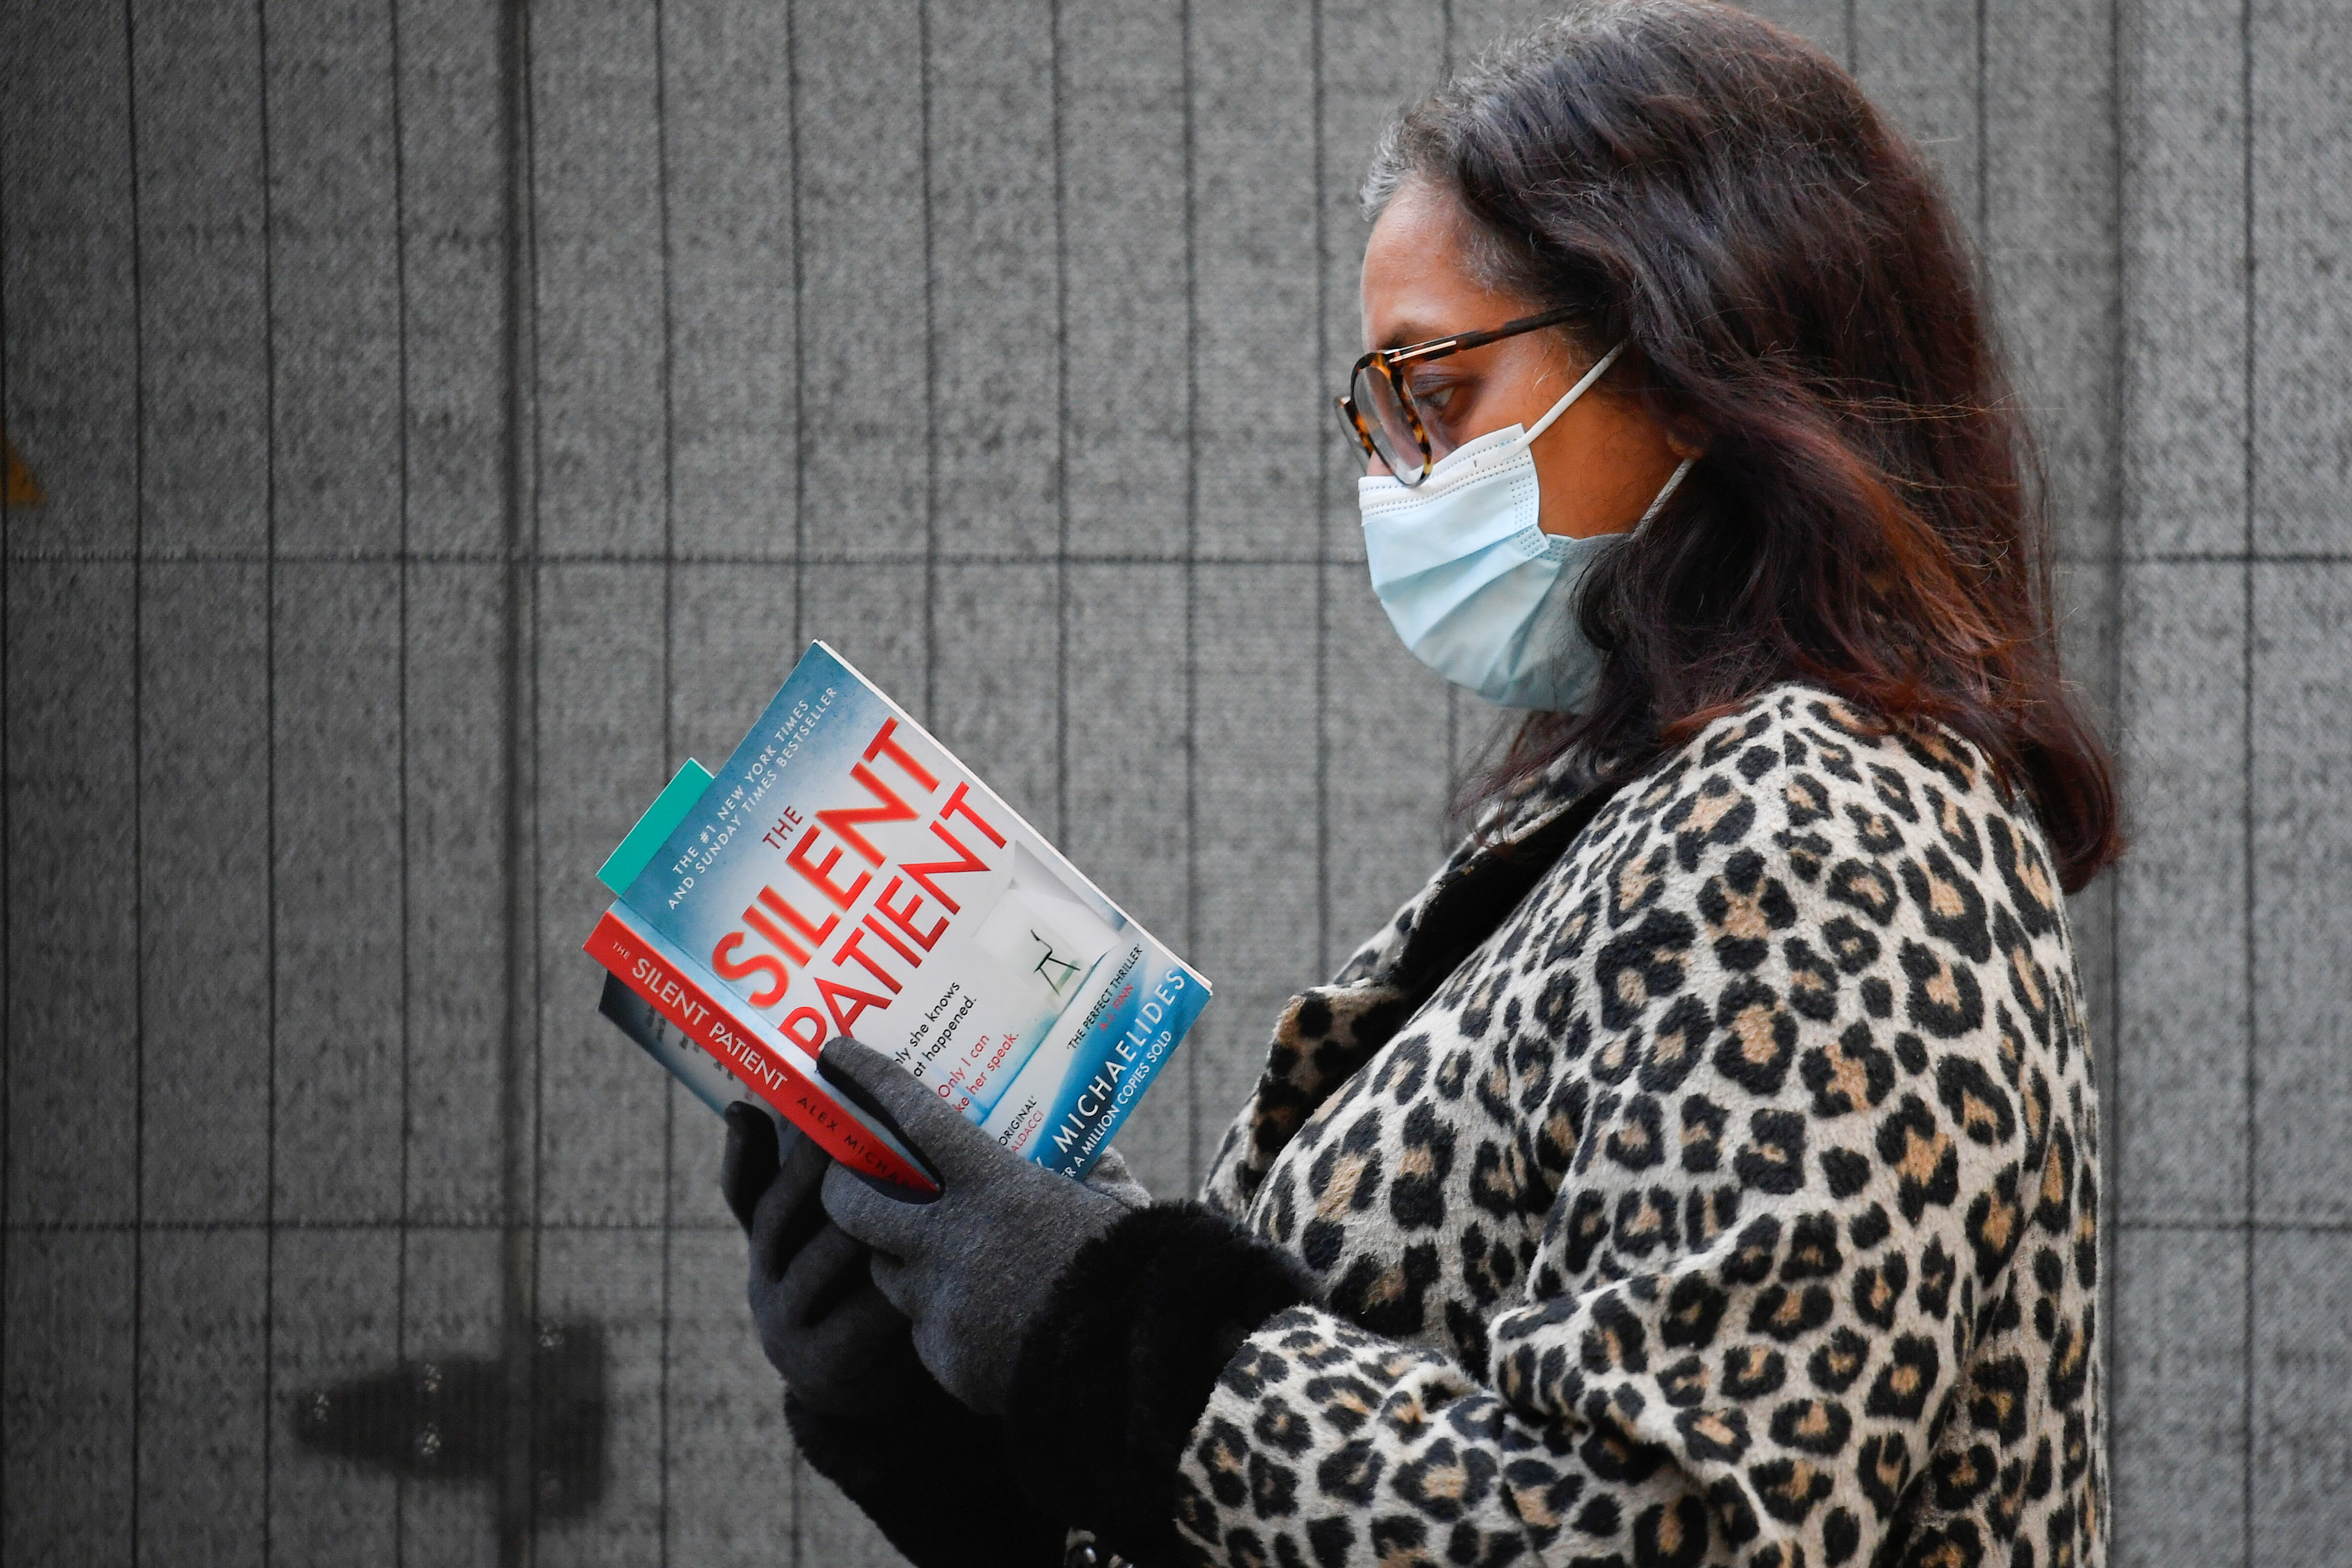 A woman reads as she waits to receive a COVID-19 vaccine at London Bridge vaccination centre, amidst the spread of the coronavirus disease (COVID-19), in London, Britain December 30, 2020. REUTERS/Toby Melville